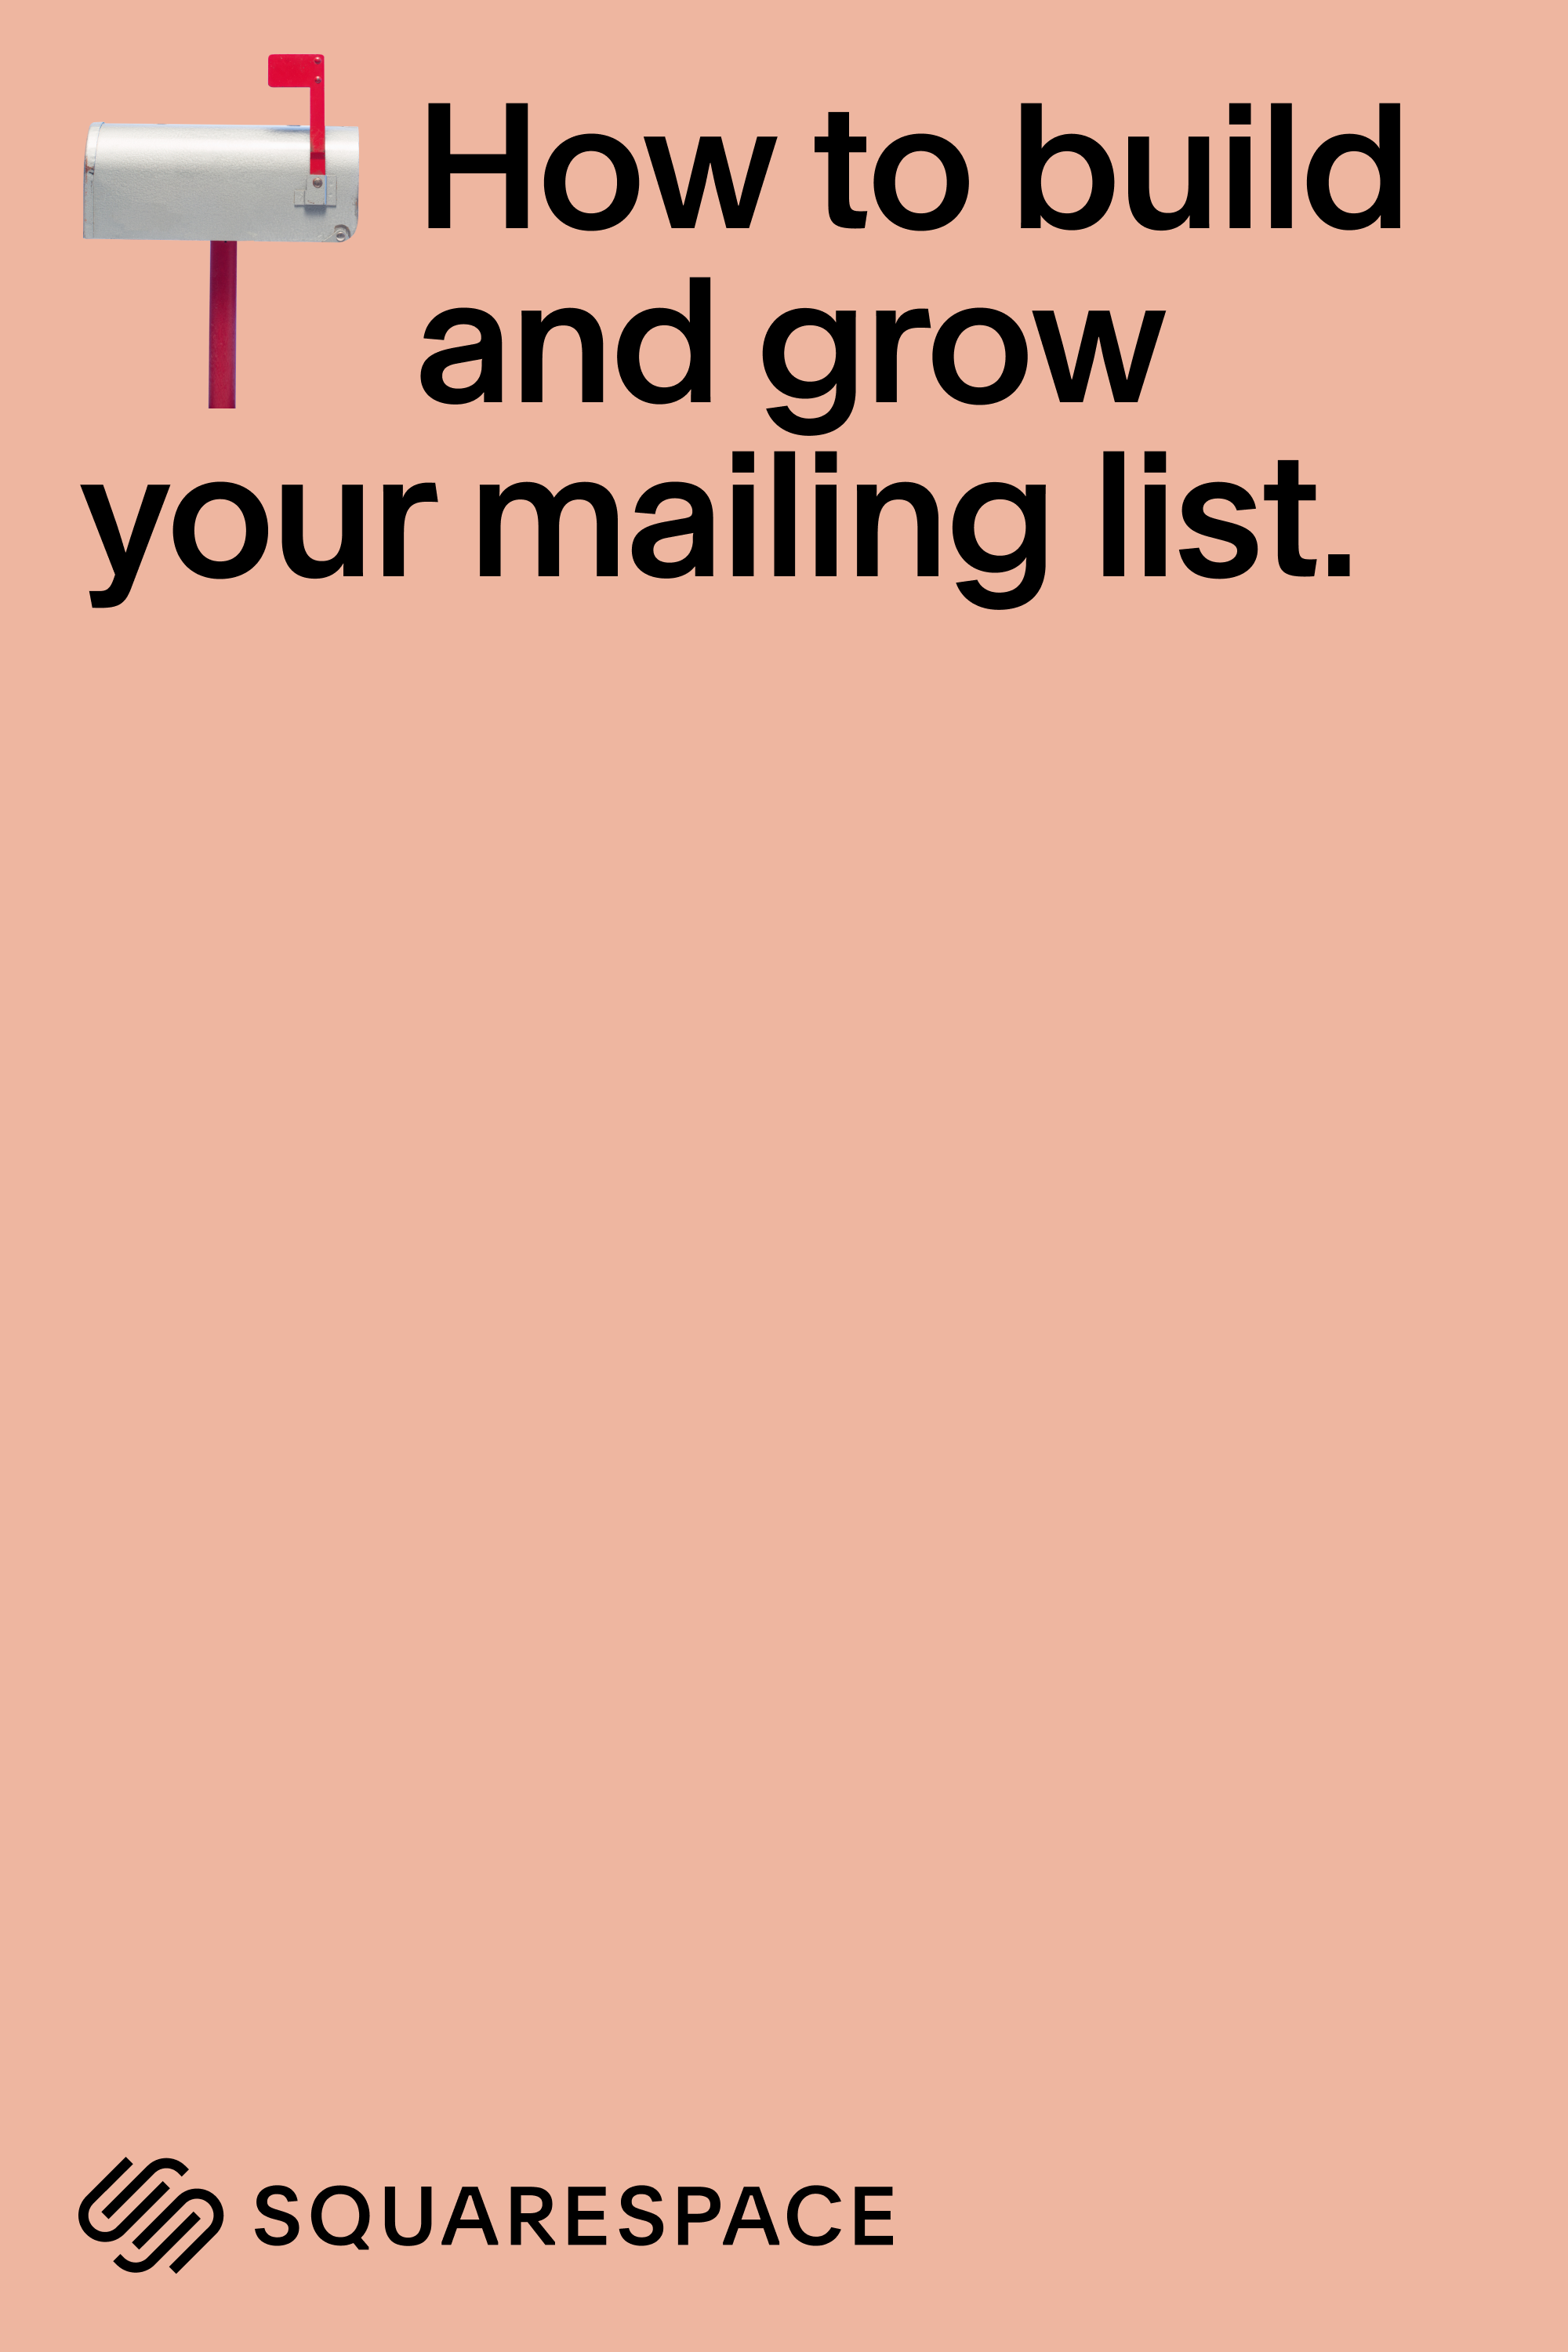 Grow your mailing list.